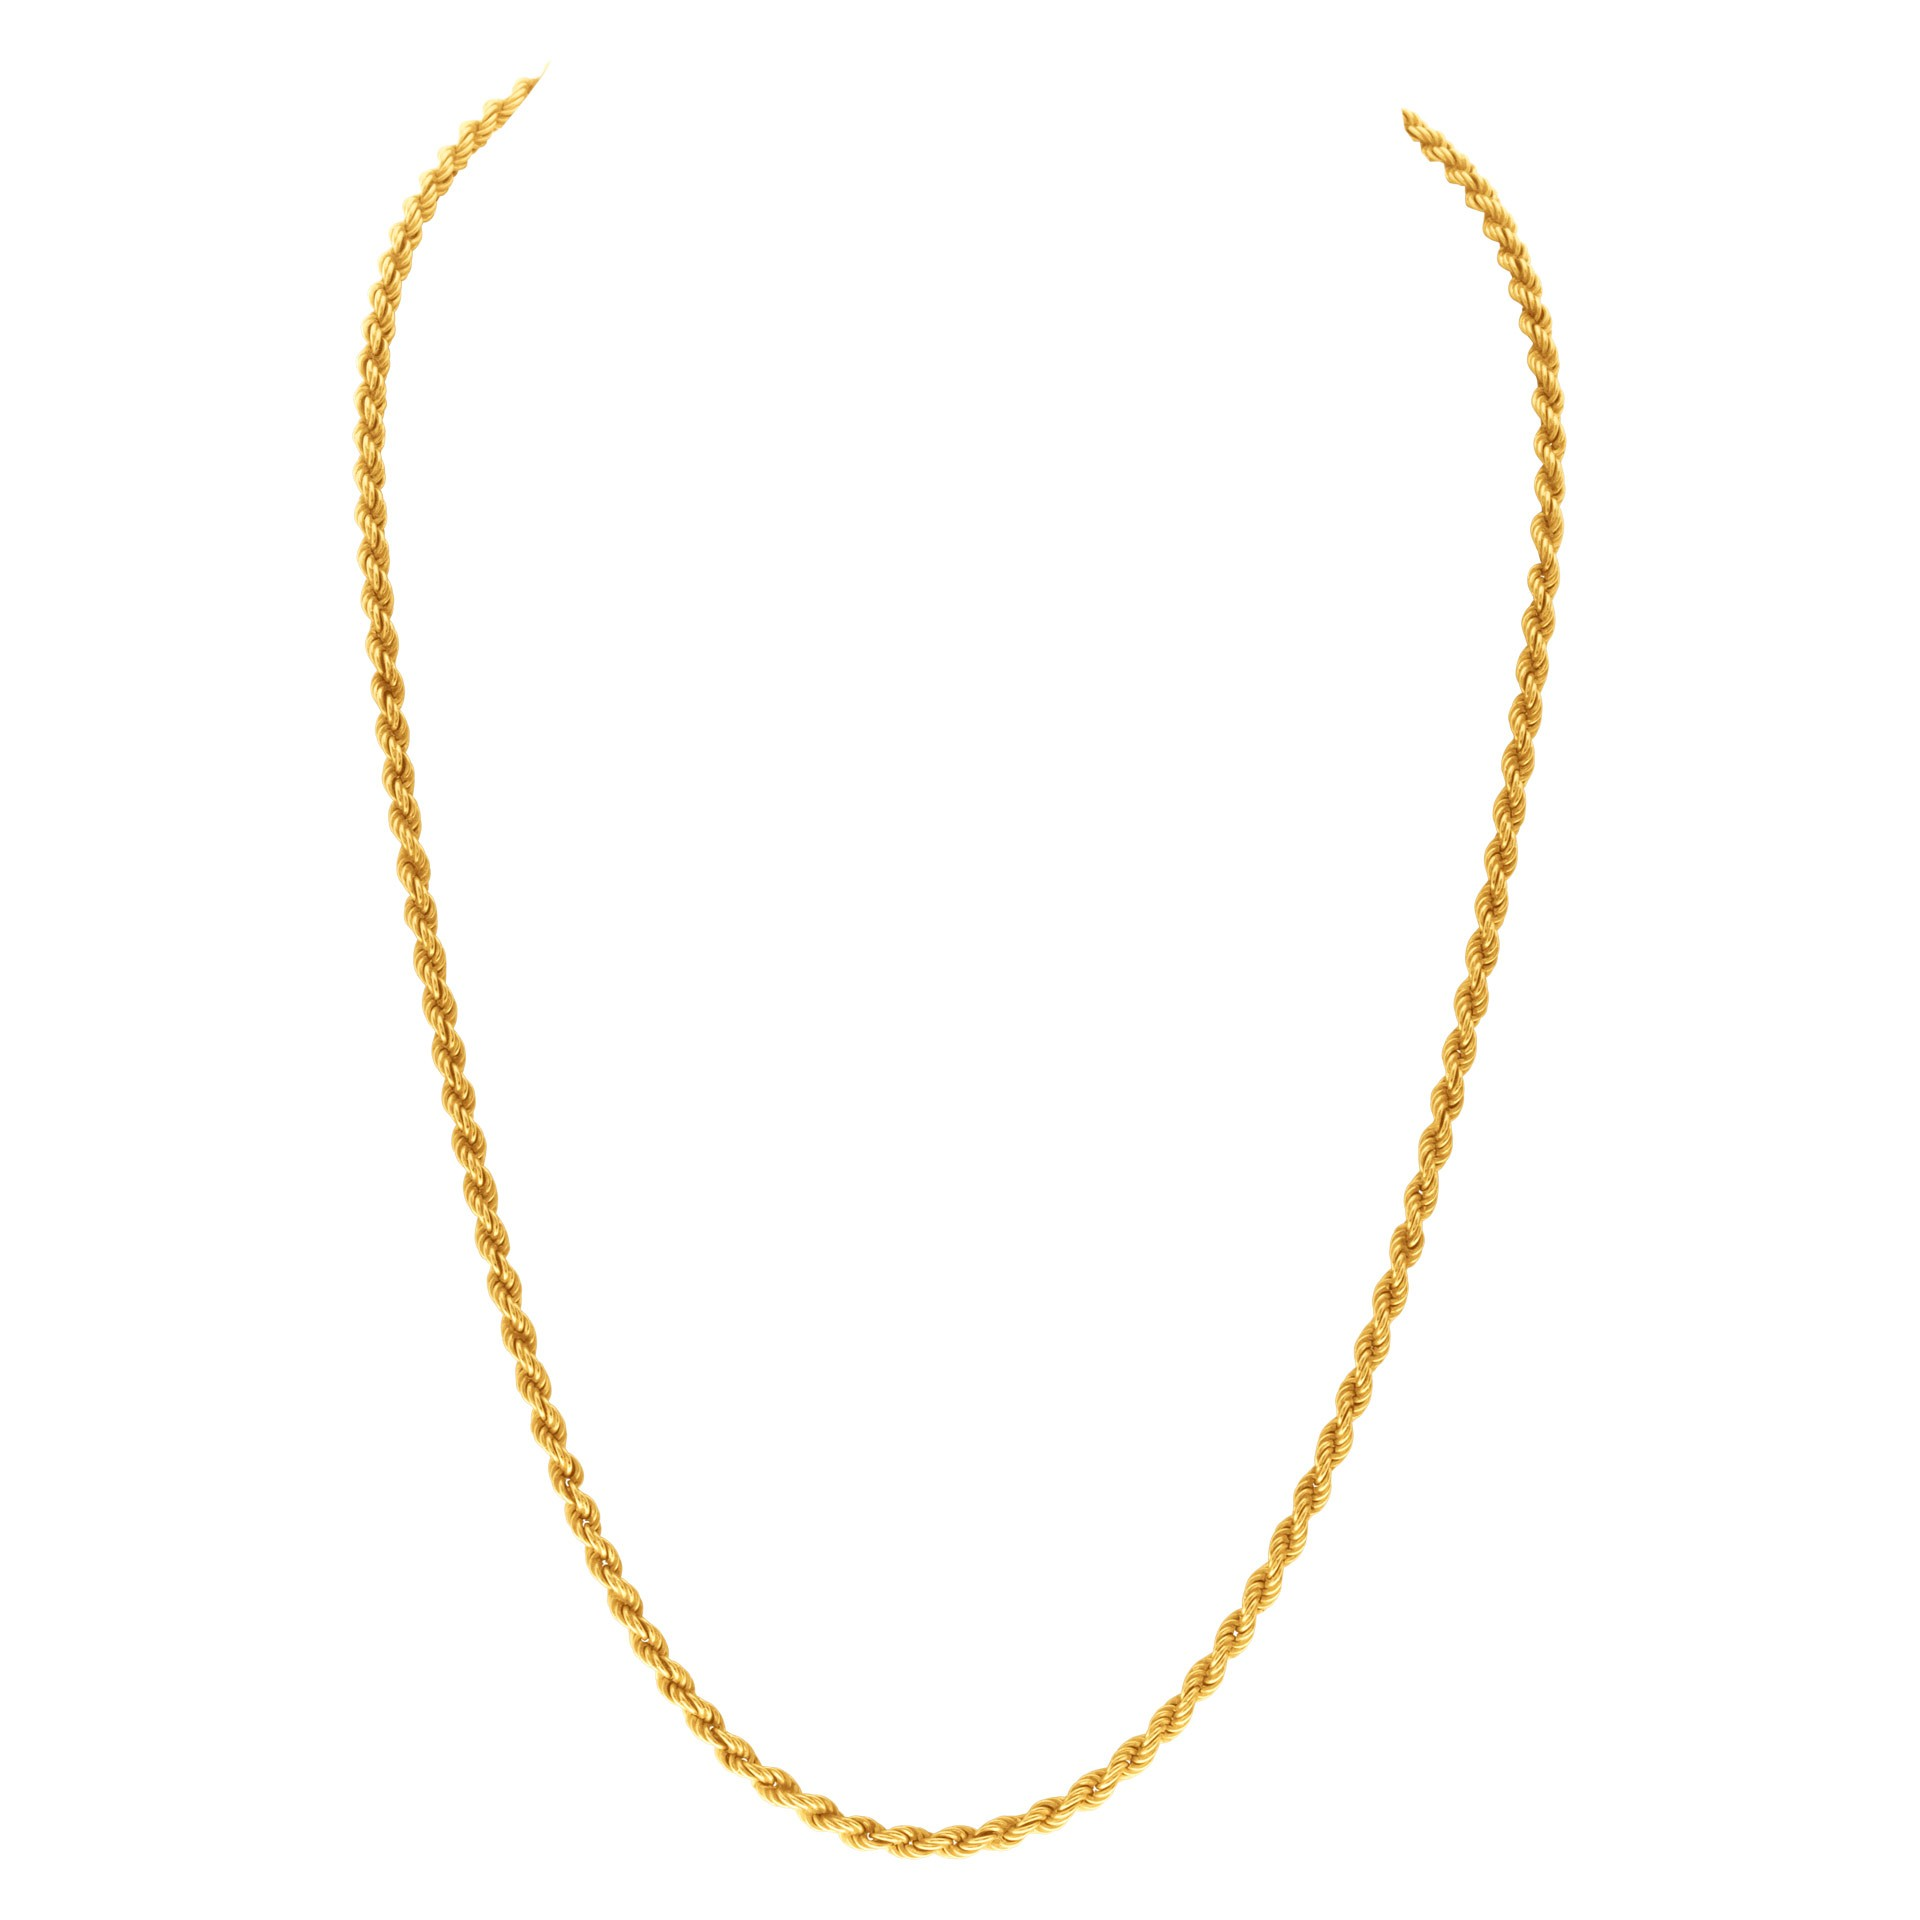 Fine Jewelry for Less than $1000: Yellow Gold Chain